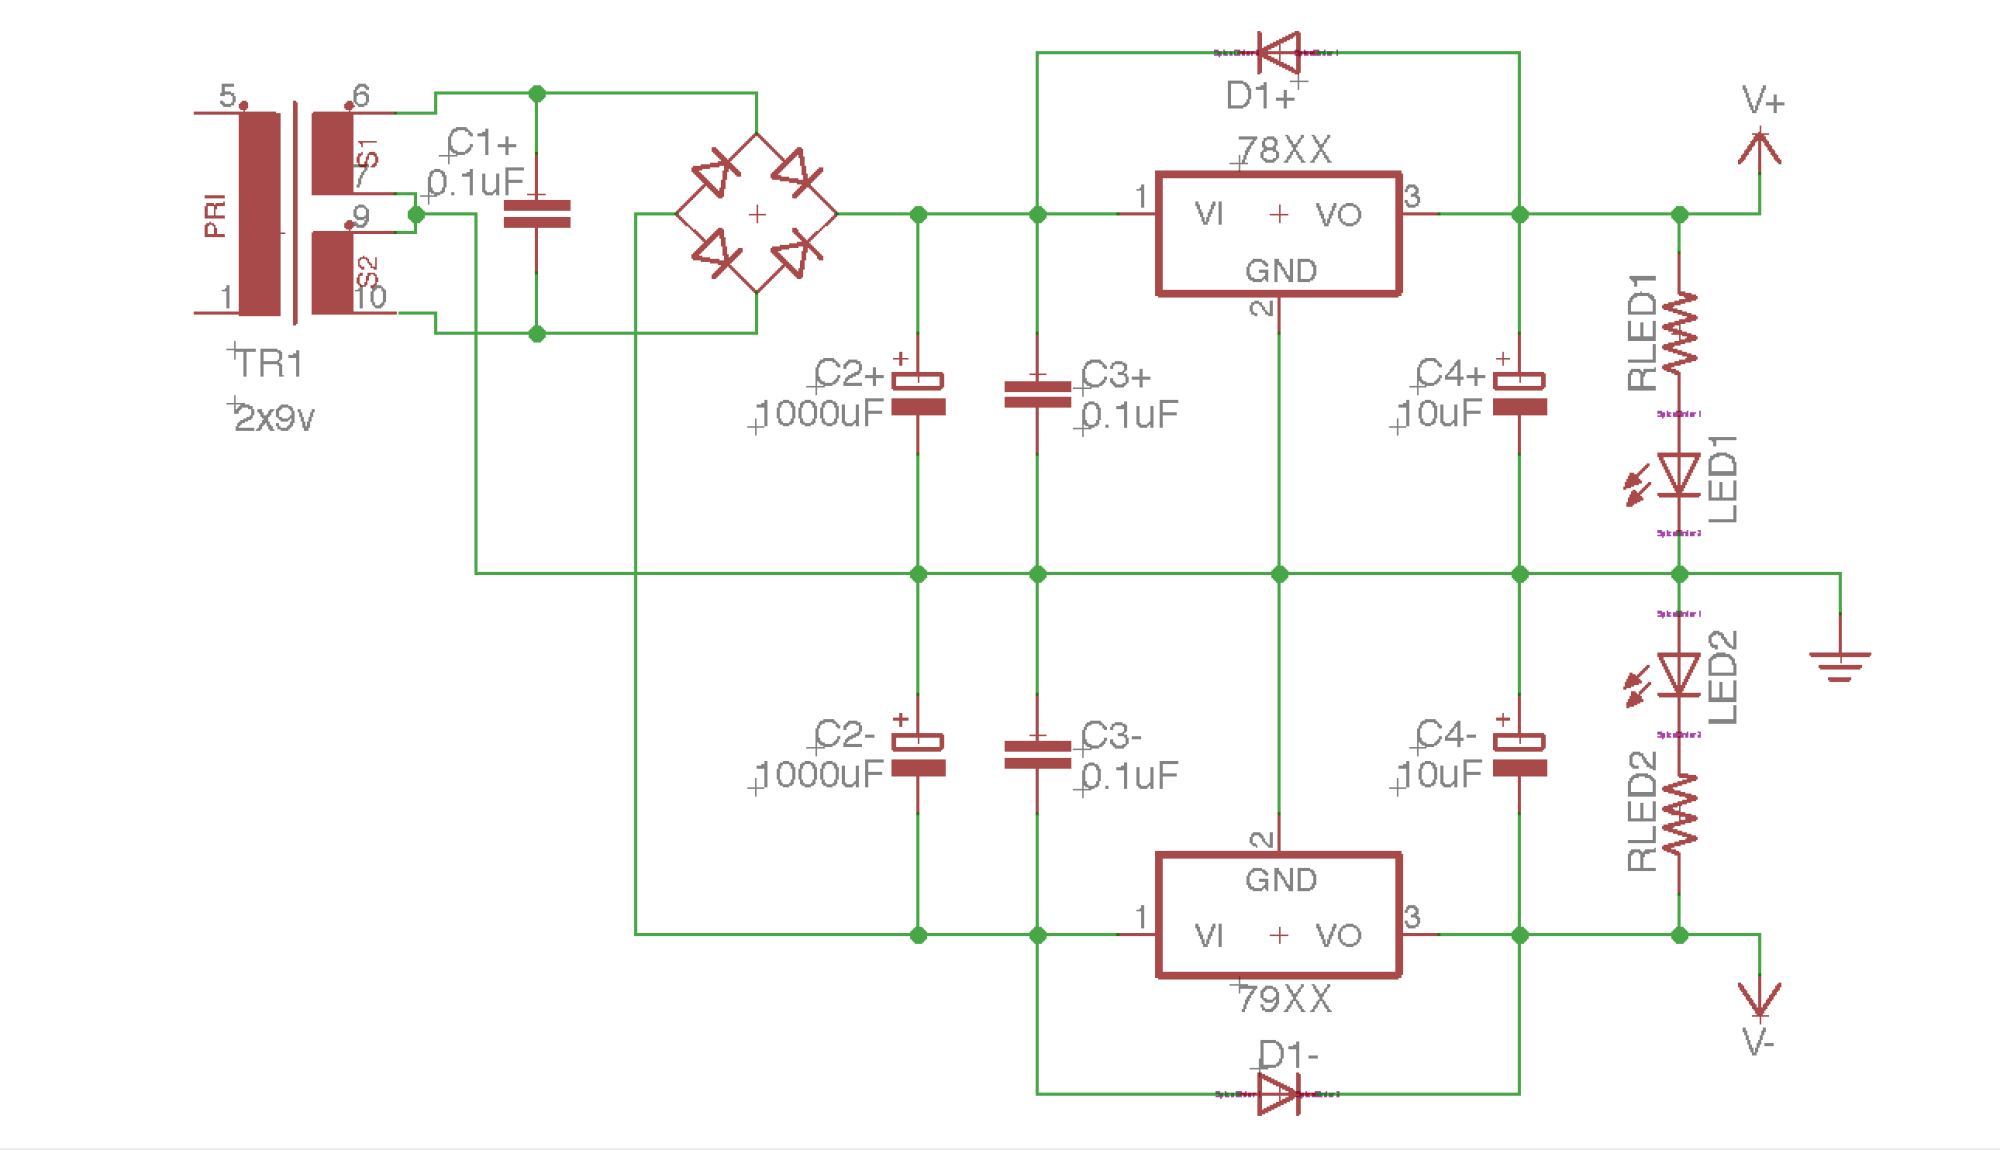 hight resolution of building a dual rail regulated dc power supply 1 diode bridge how to build dualrail variable dc power supply circuit diagram